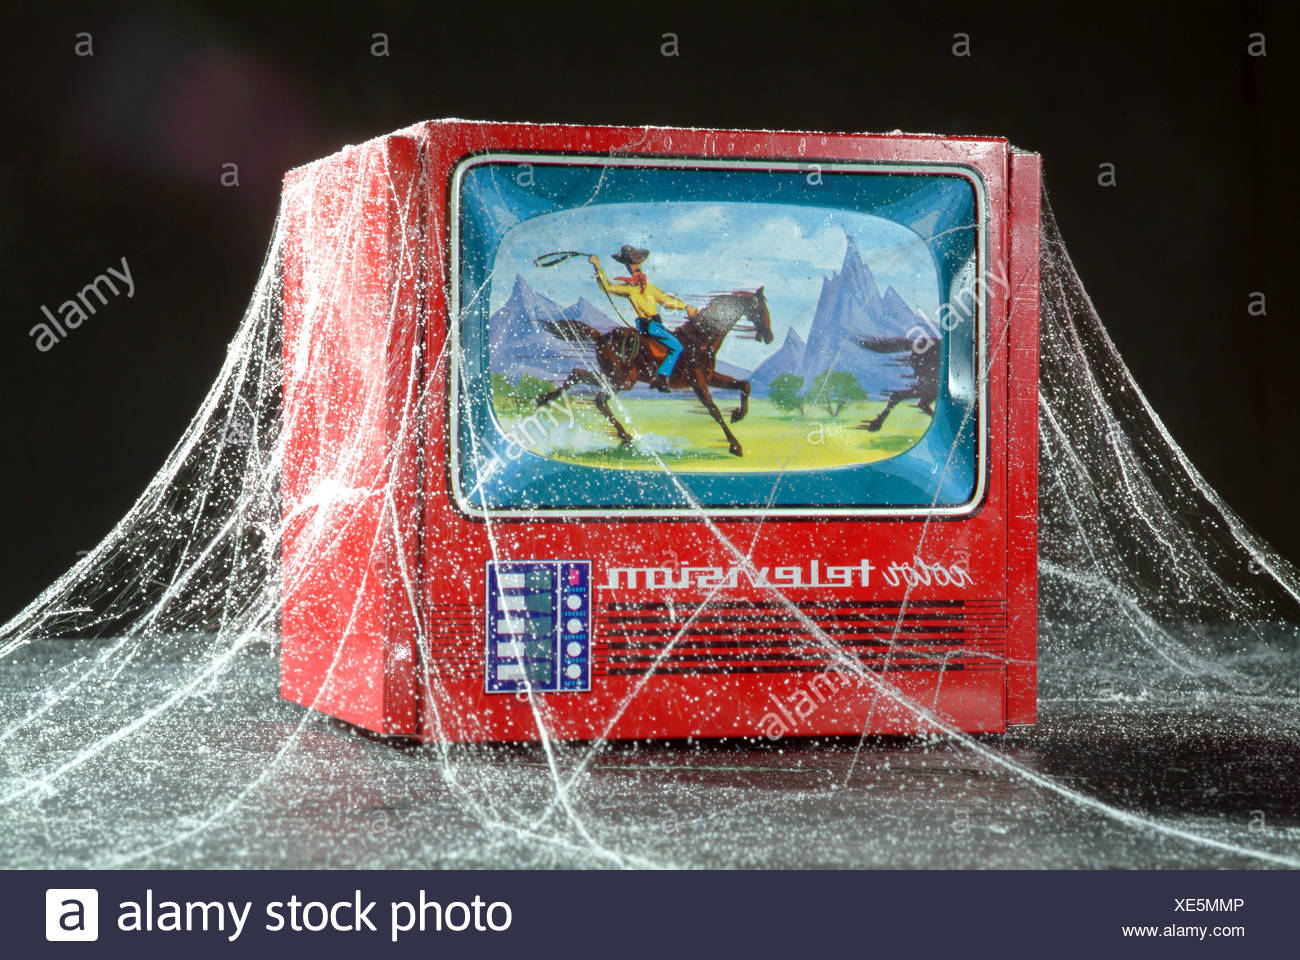 Model of a color television with cobwebs Stock Photo - Alamy